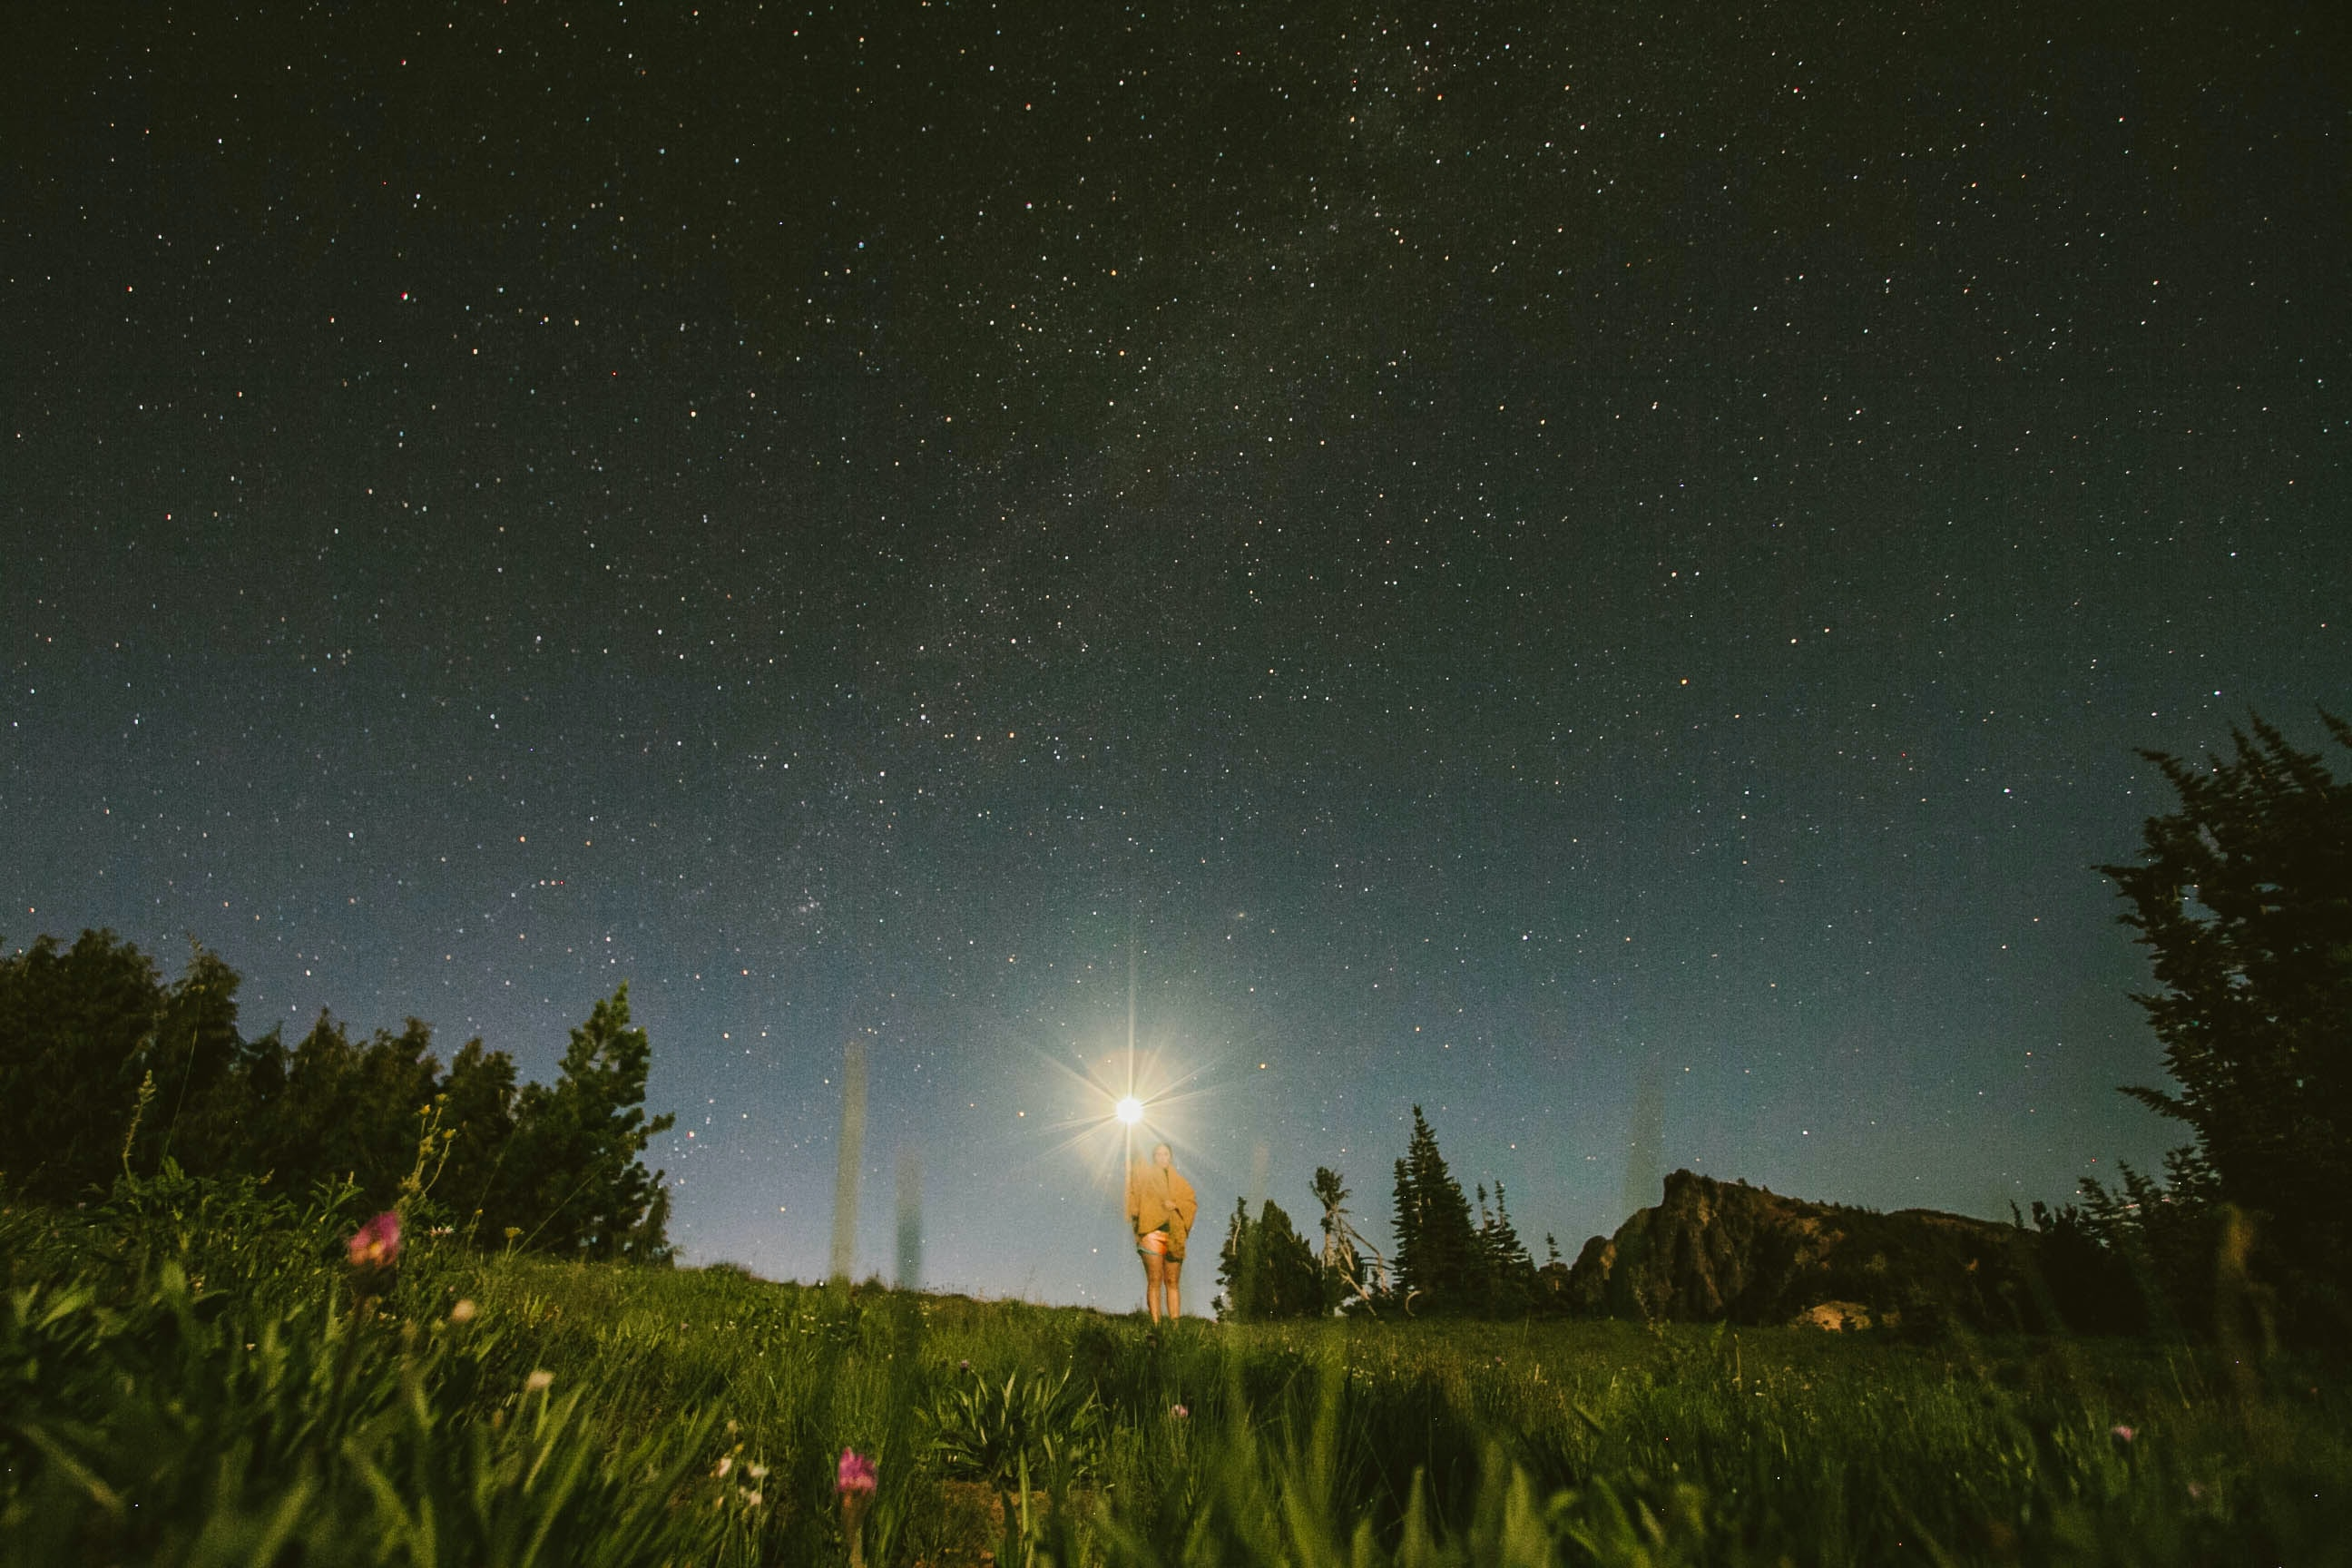 A starry night sky and a woman standing in the grass, wearing a yellow blanket, and holding a flashlight